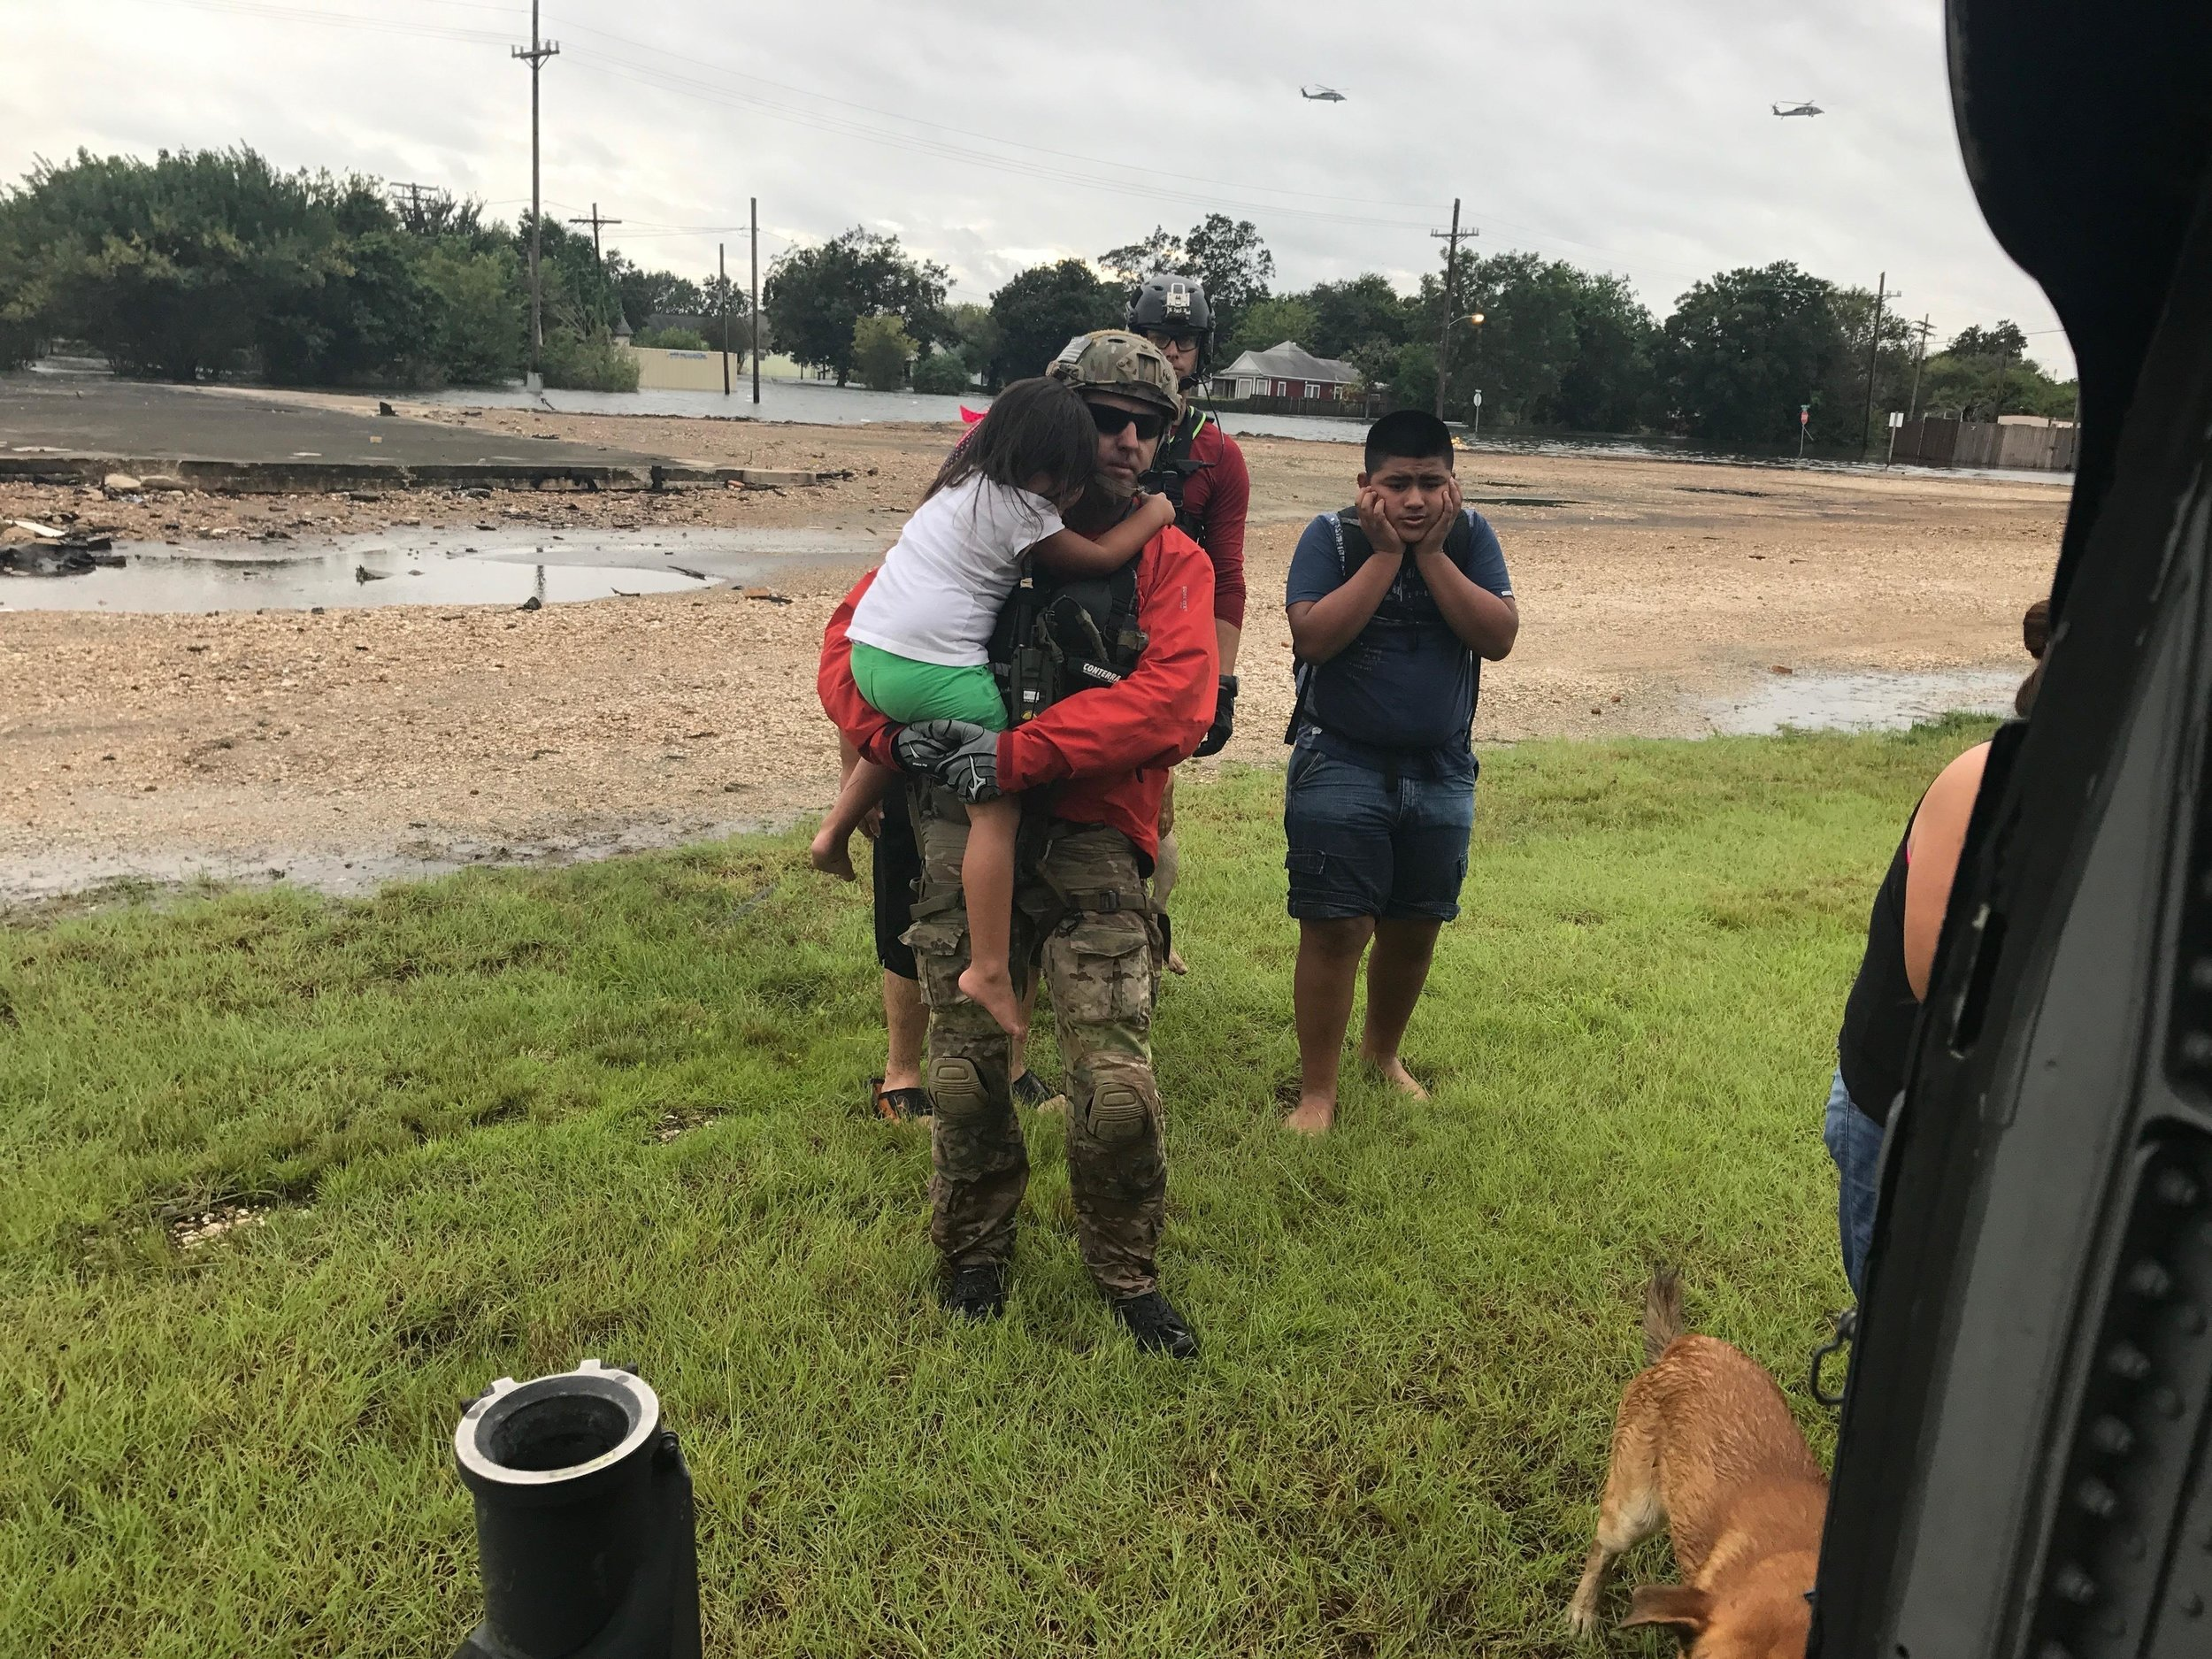 The 920th Rescue Wing rescues people stranded after Hurricane Harvey. (Photo credit:U.S. Air Force photo/Tech. Sgt. Lindsey Maurice)